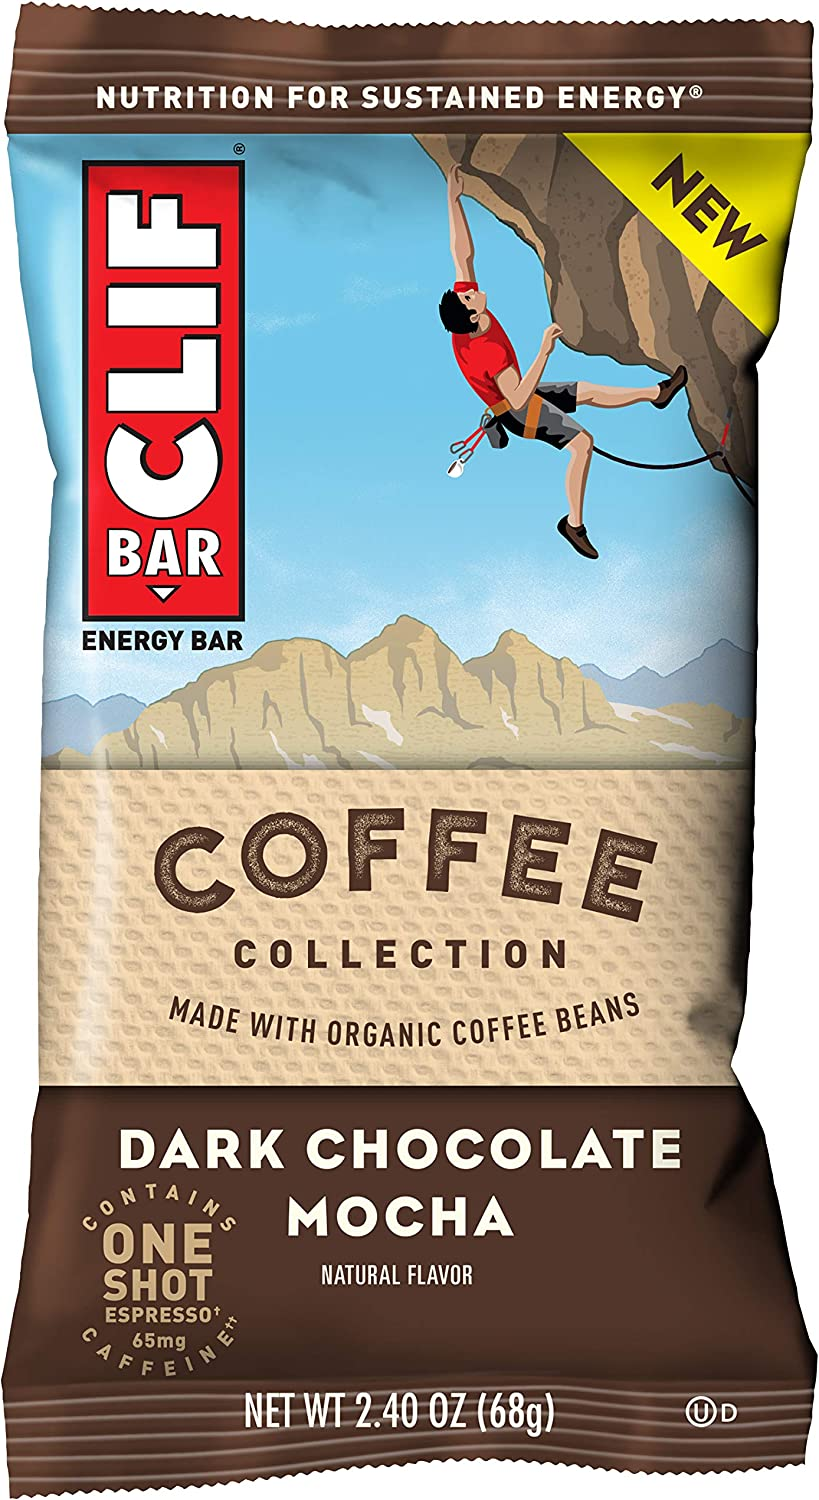 CLIF BARS with 1 Shot of Espresso - Energy Bars - Dark Chocolate Mocha - Coffee Collection - 65 mgs of Caffeine Per Bar- Made with Organic Oats - Plant Based Food (2.4 Oz Breakfast Bars, 12 Count)